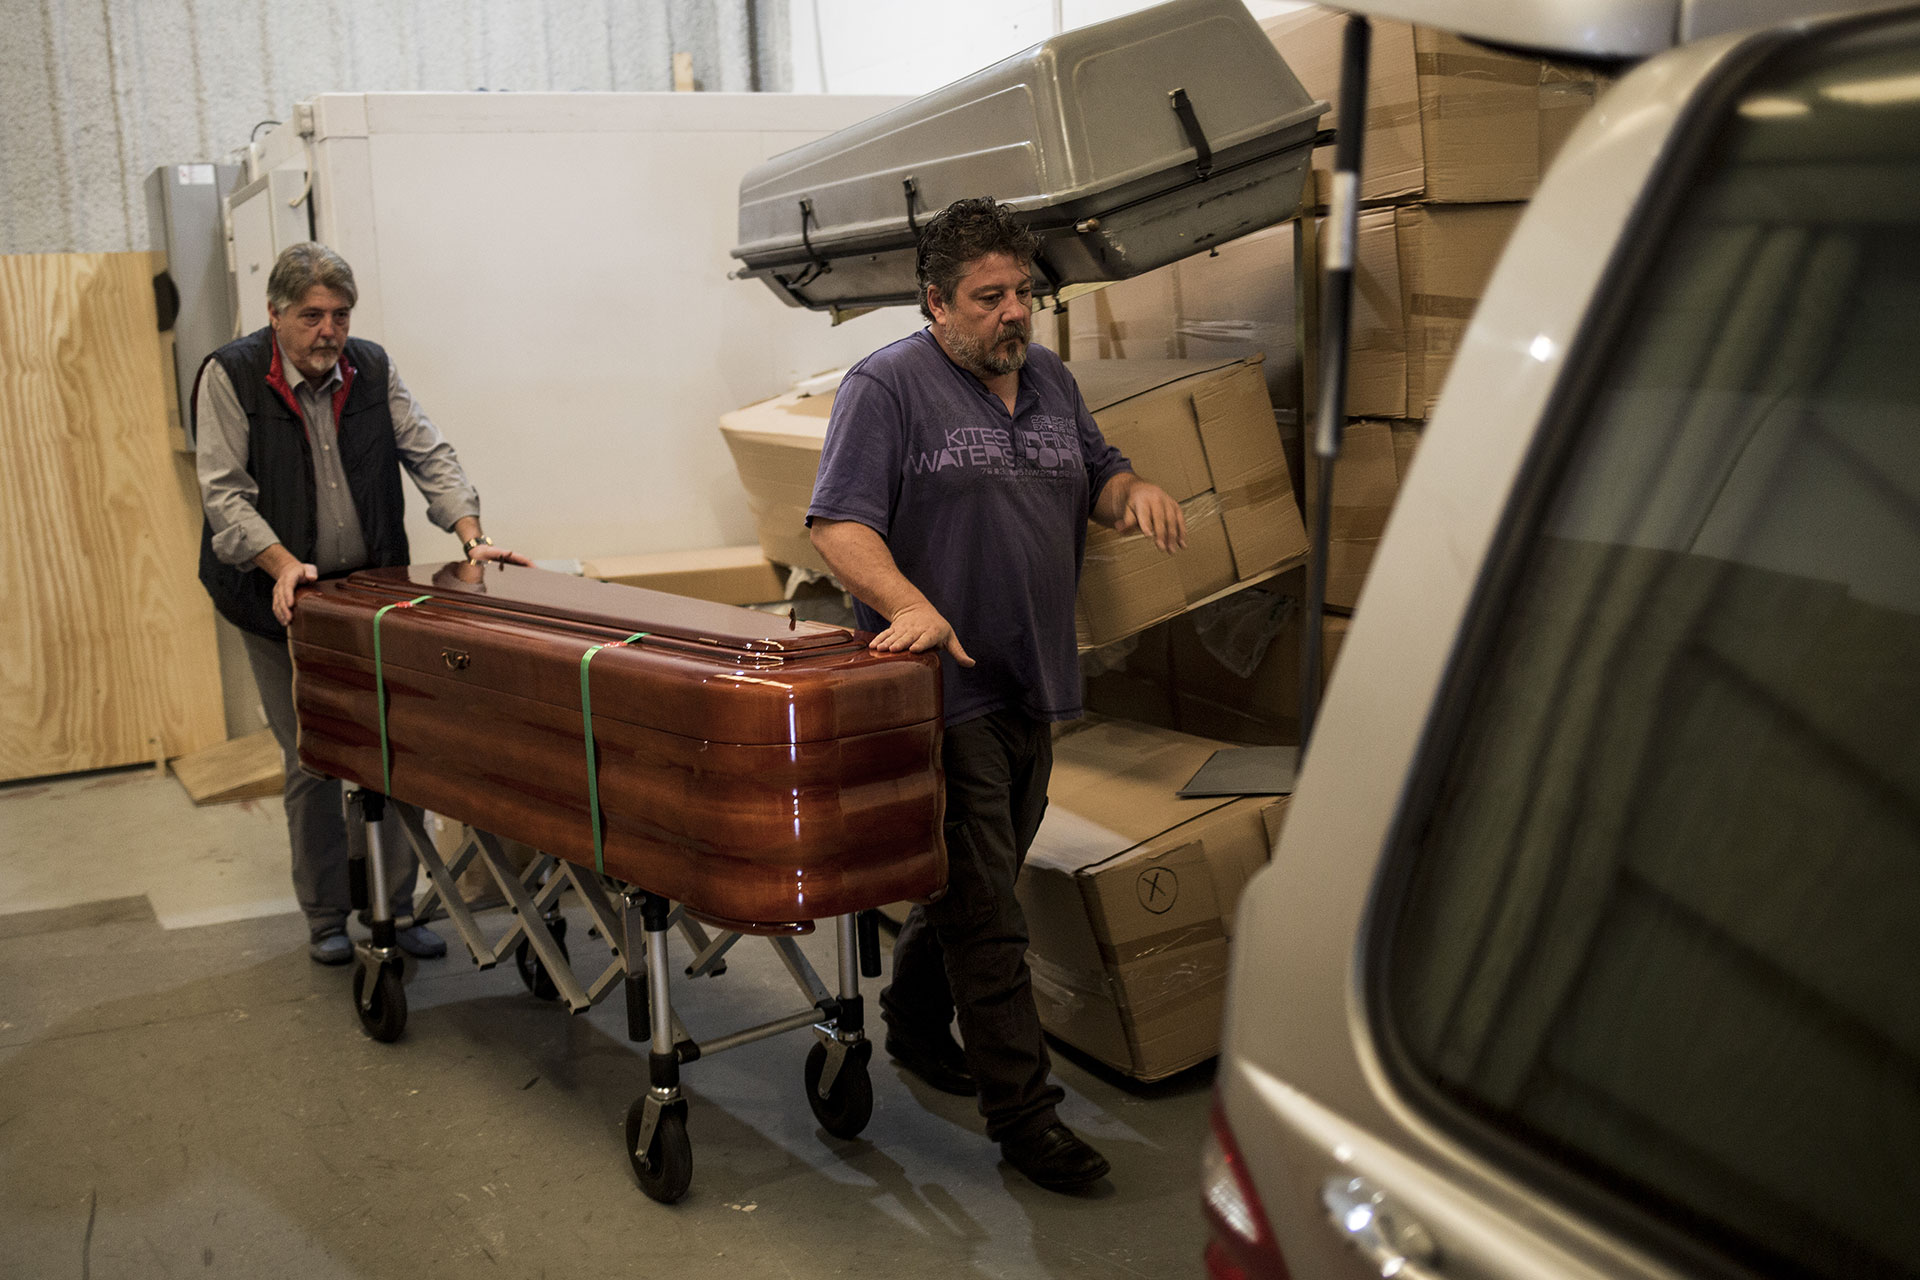 Martín Zamora and a colleague push the coffin carrying the corpse of Zohra Sarrouj at the Southern Funeral Assistance premises in Algeciras, Spain.